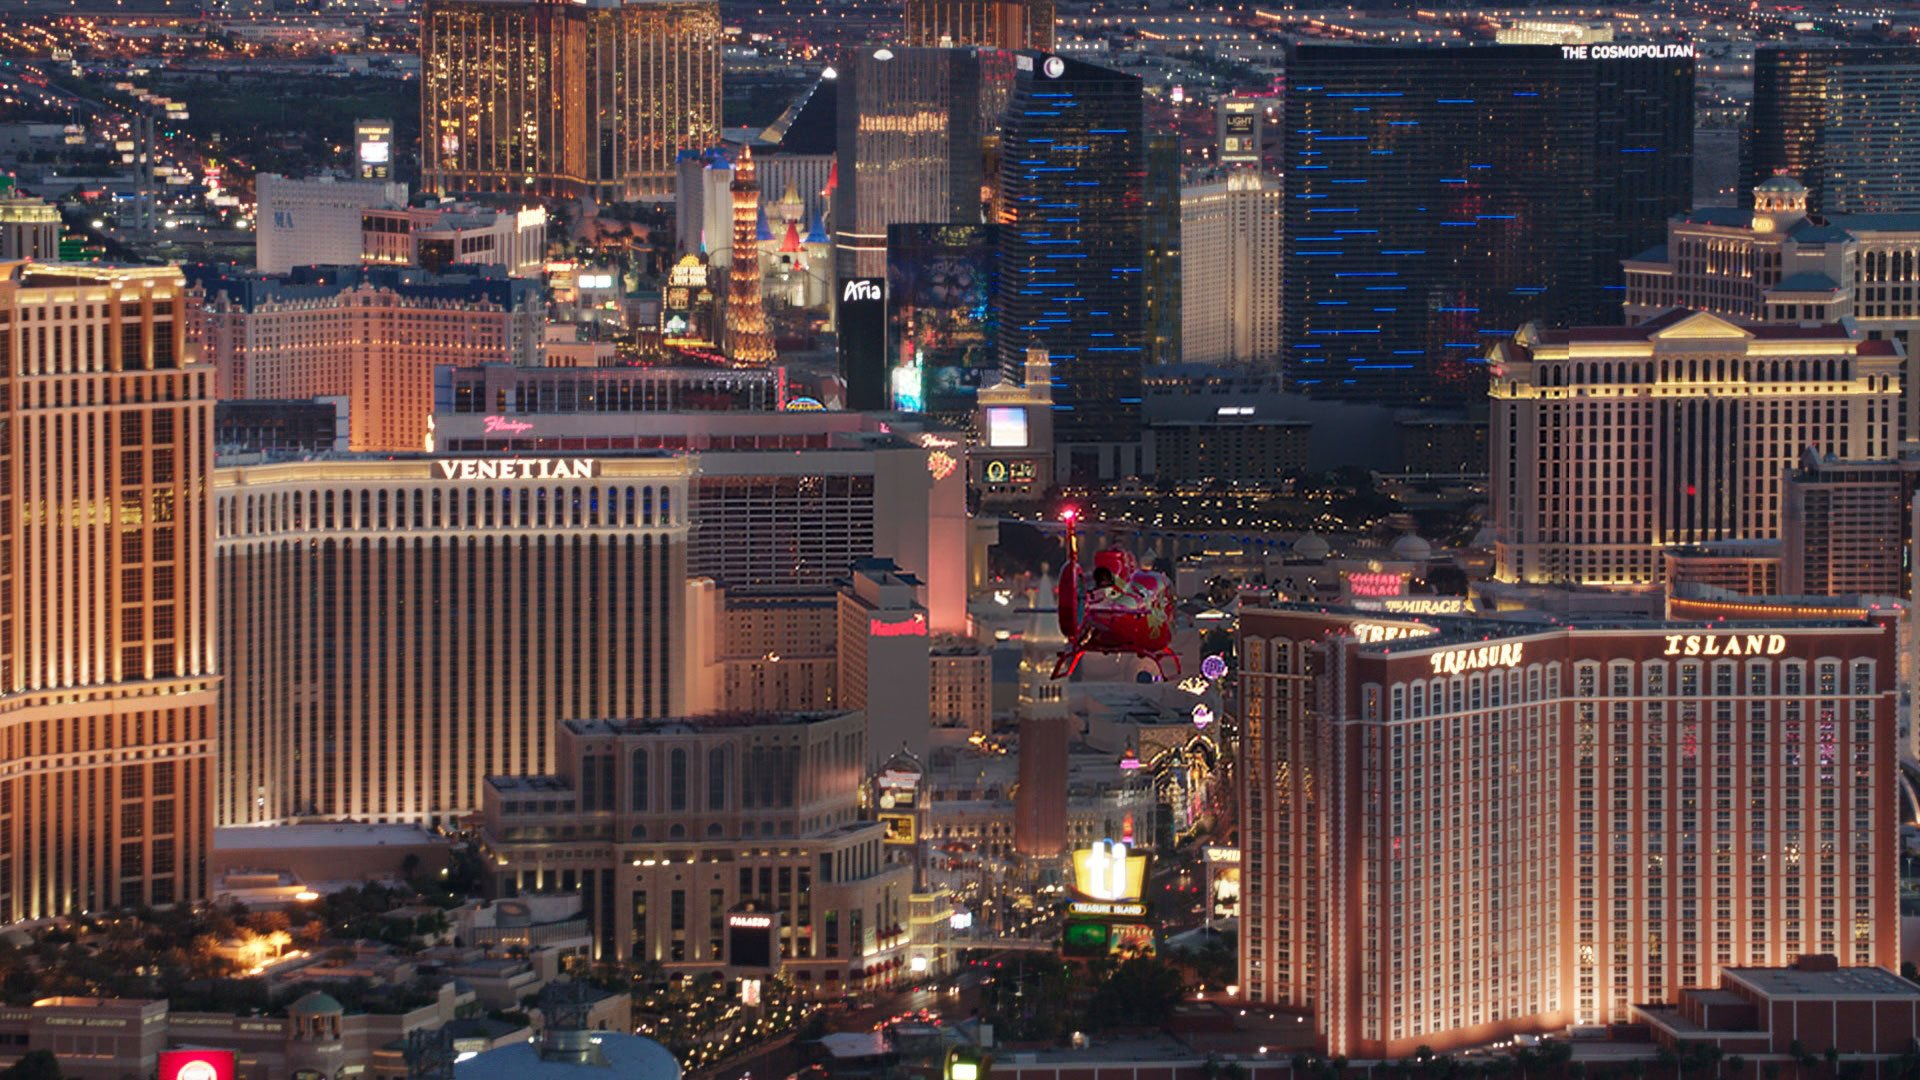 An EC-130 helicopter flies over the Las Vegas Strip at night.